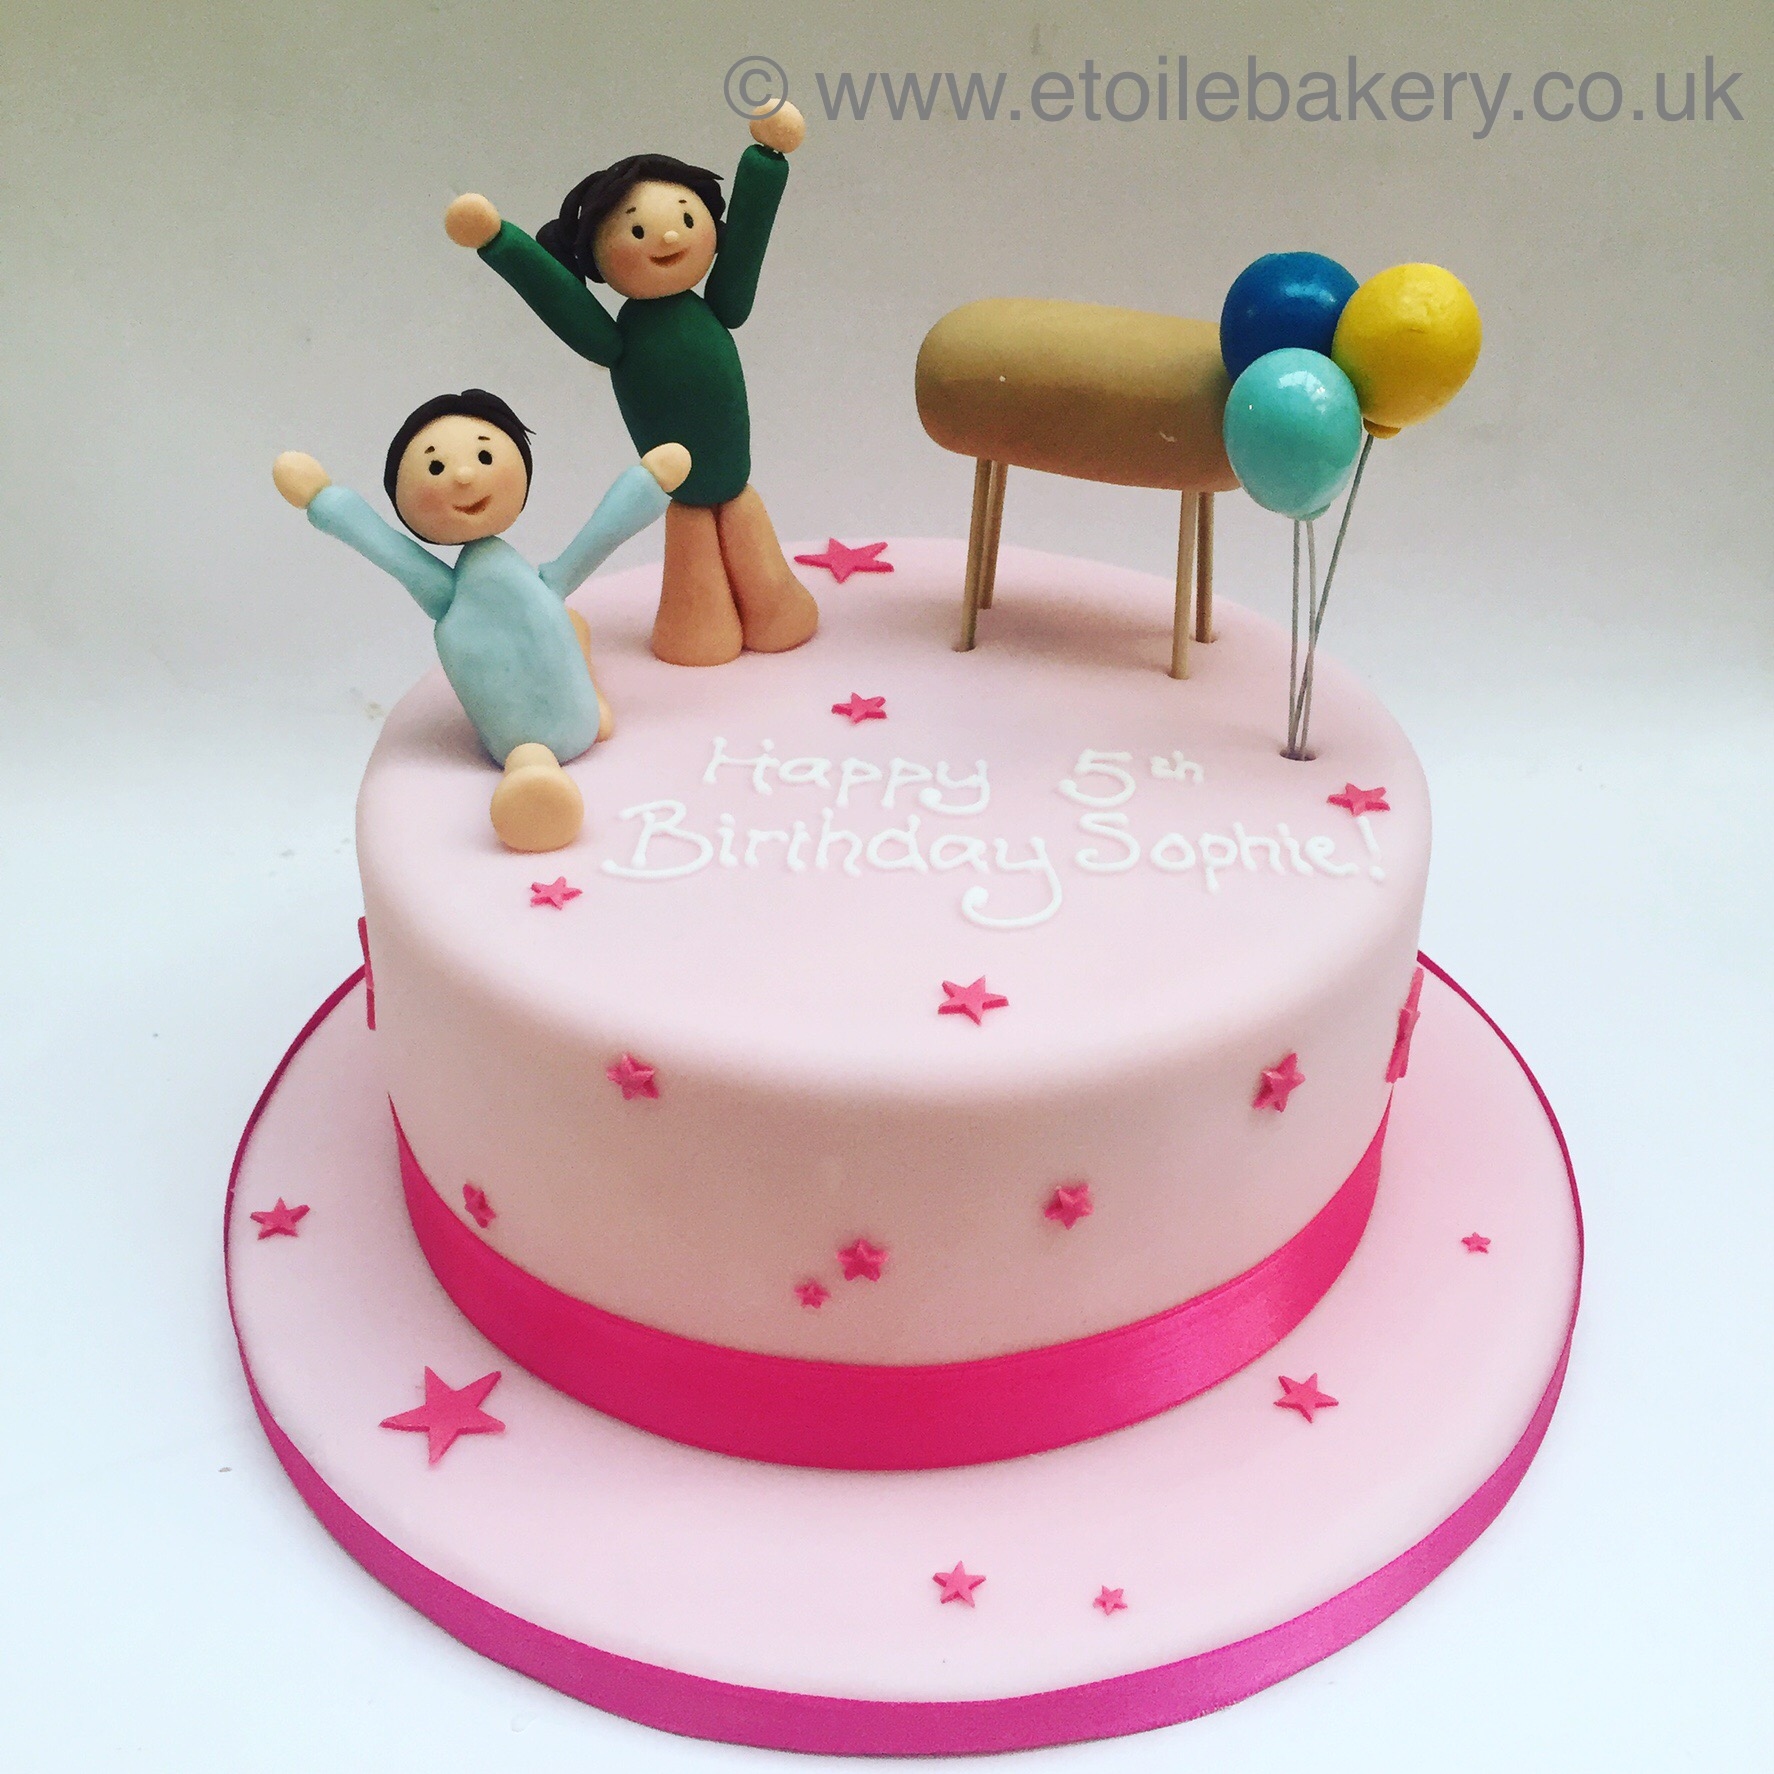 Fine Gymnastics Birthday Cake Etoile Bakery Personalised Birthday Cards Paralily Jamesorg